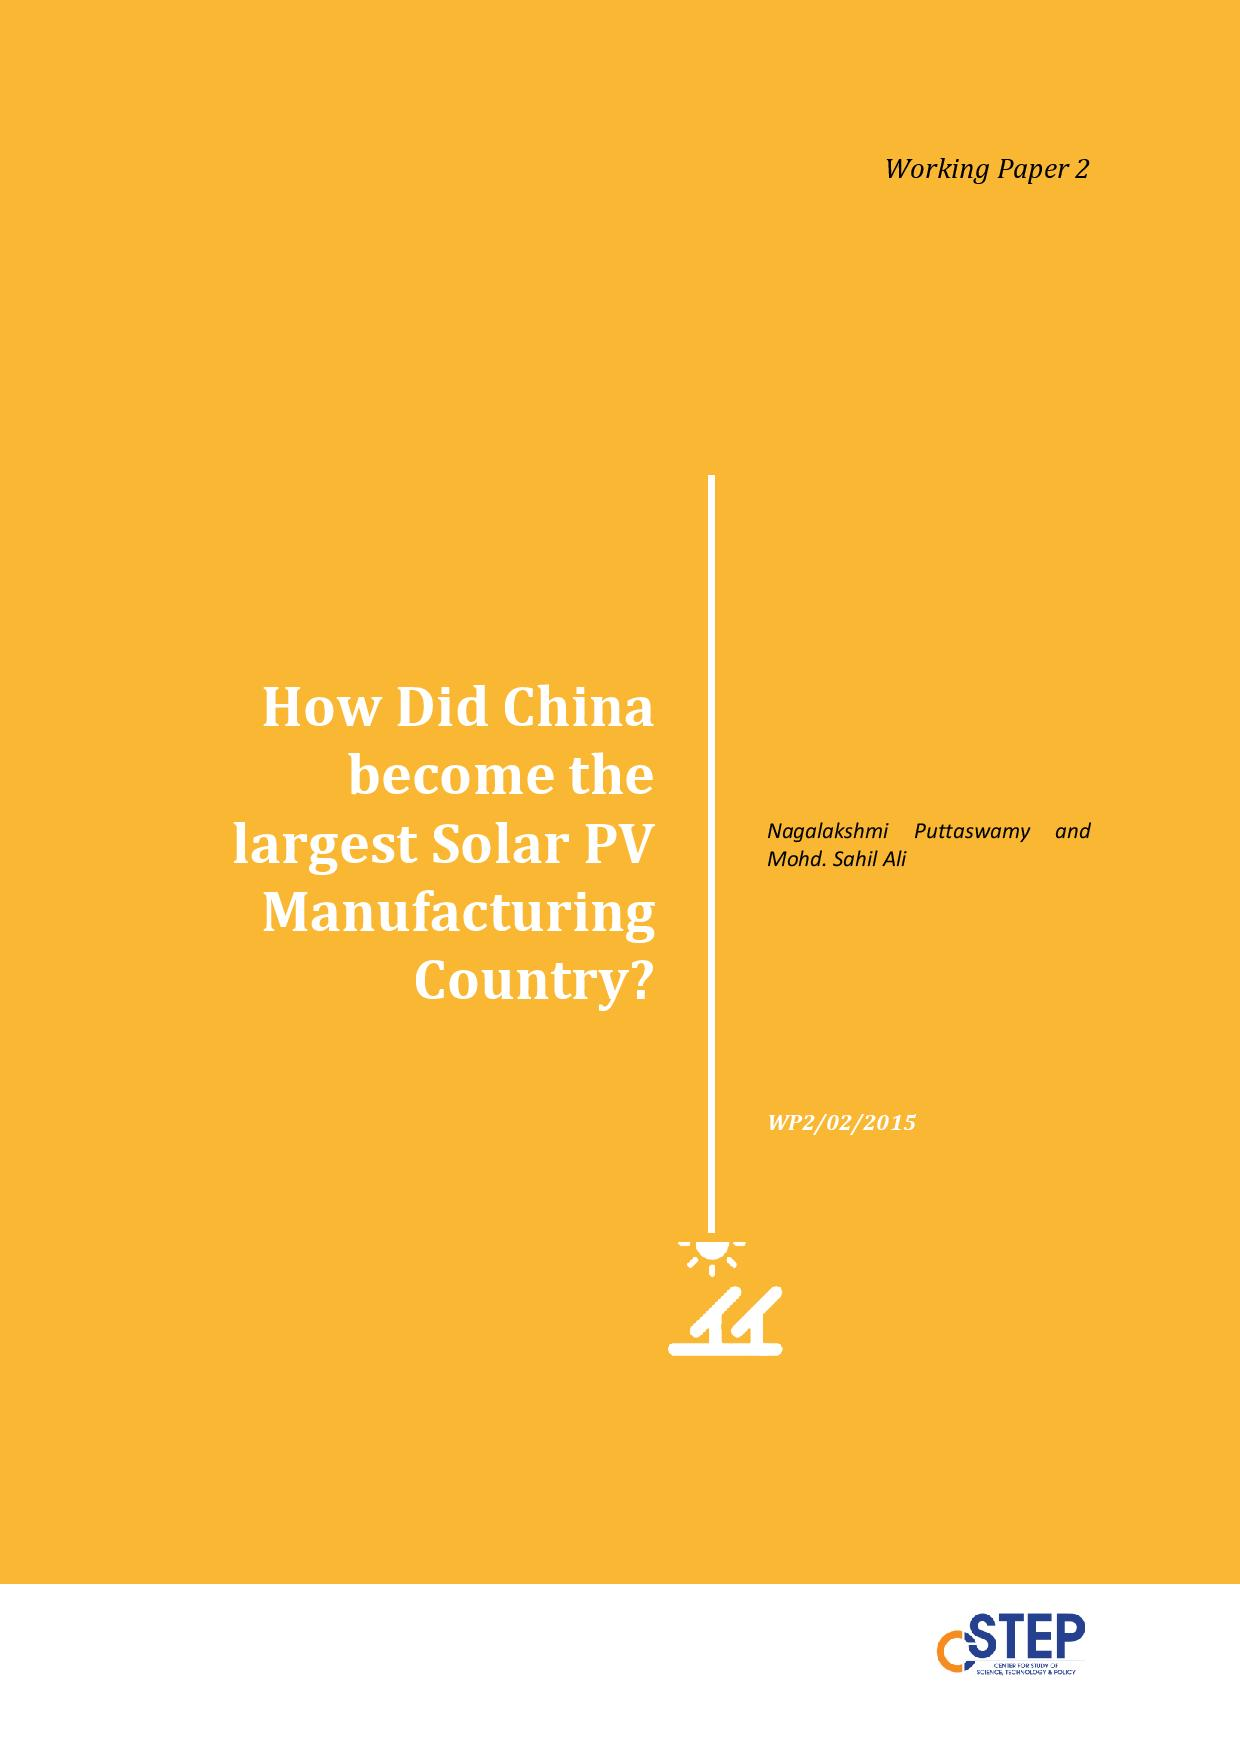 How Did China Become the Largest Solar PV Manufacturing Country?